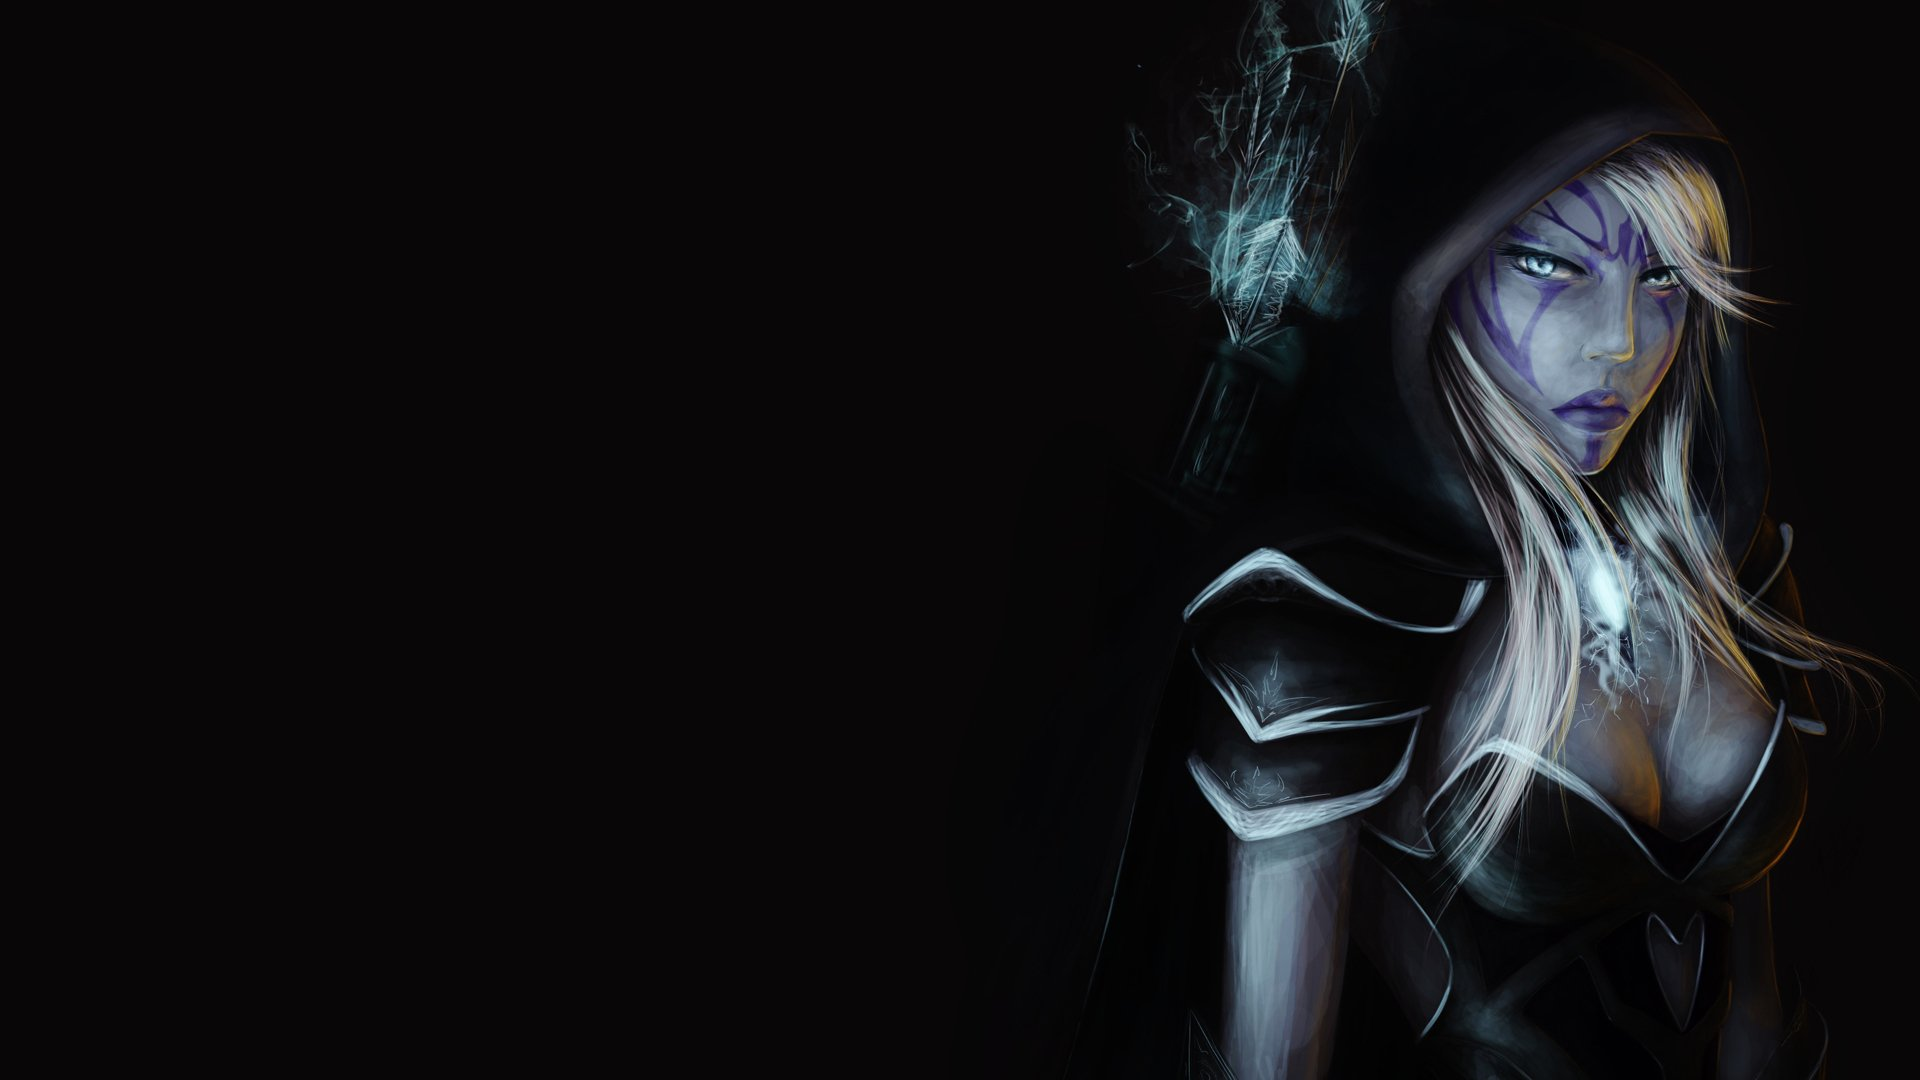 dota 2 sniper wallpapers hd resolution gaming hd wallpaper